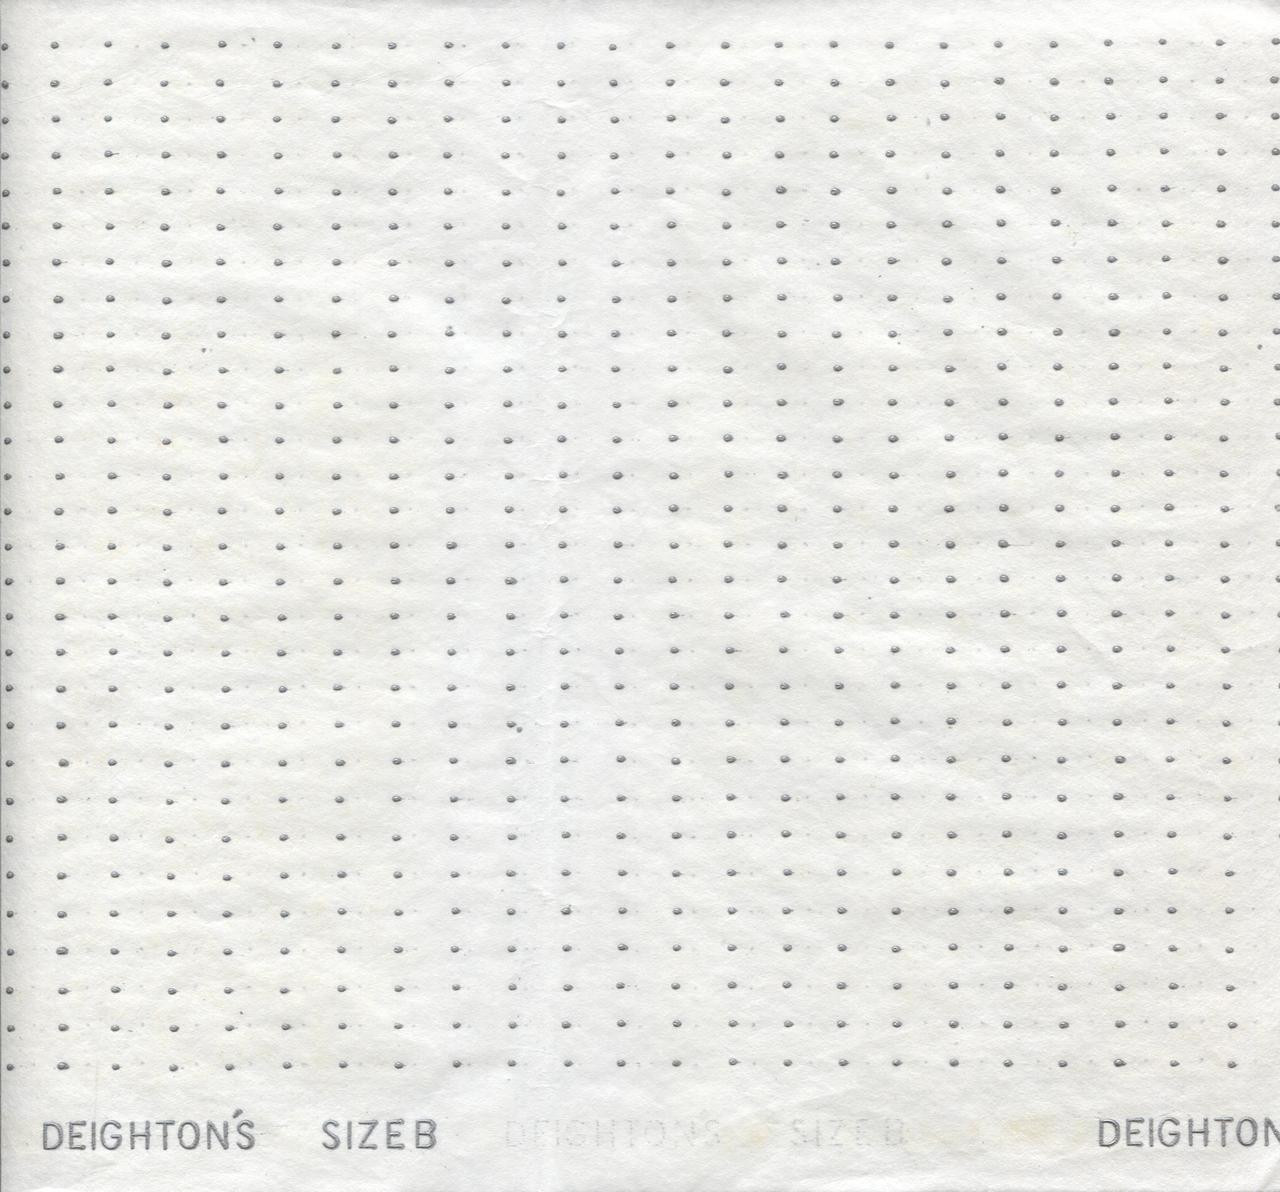 Smocking Transfer Dots - Size 'B' 9.5 mm x 6.5 mm - see video on how to use  - one sheet in each pack - not designed to wash off